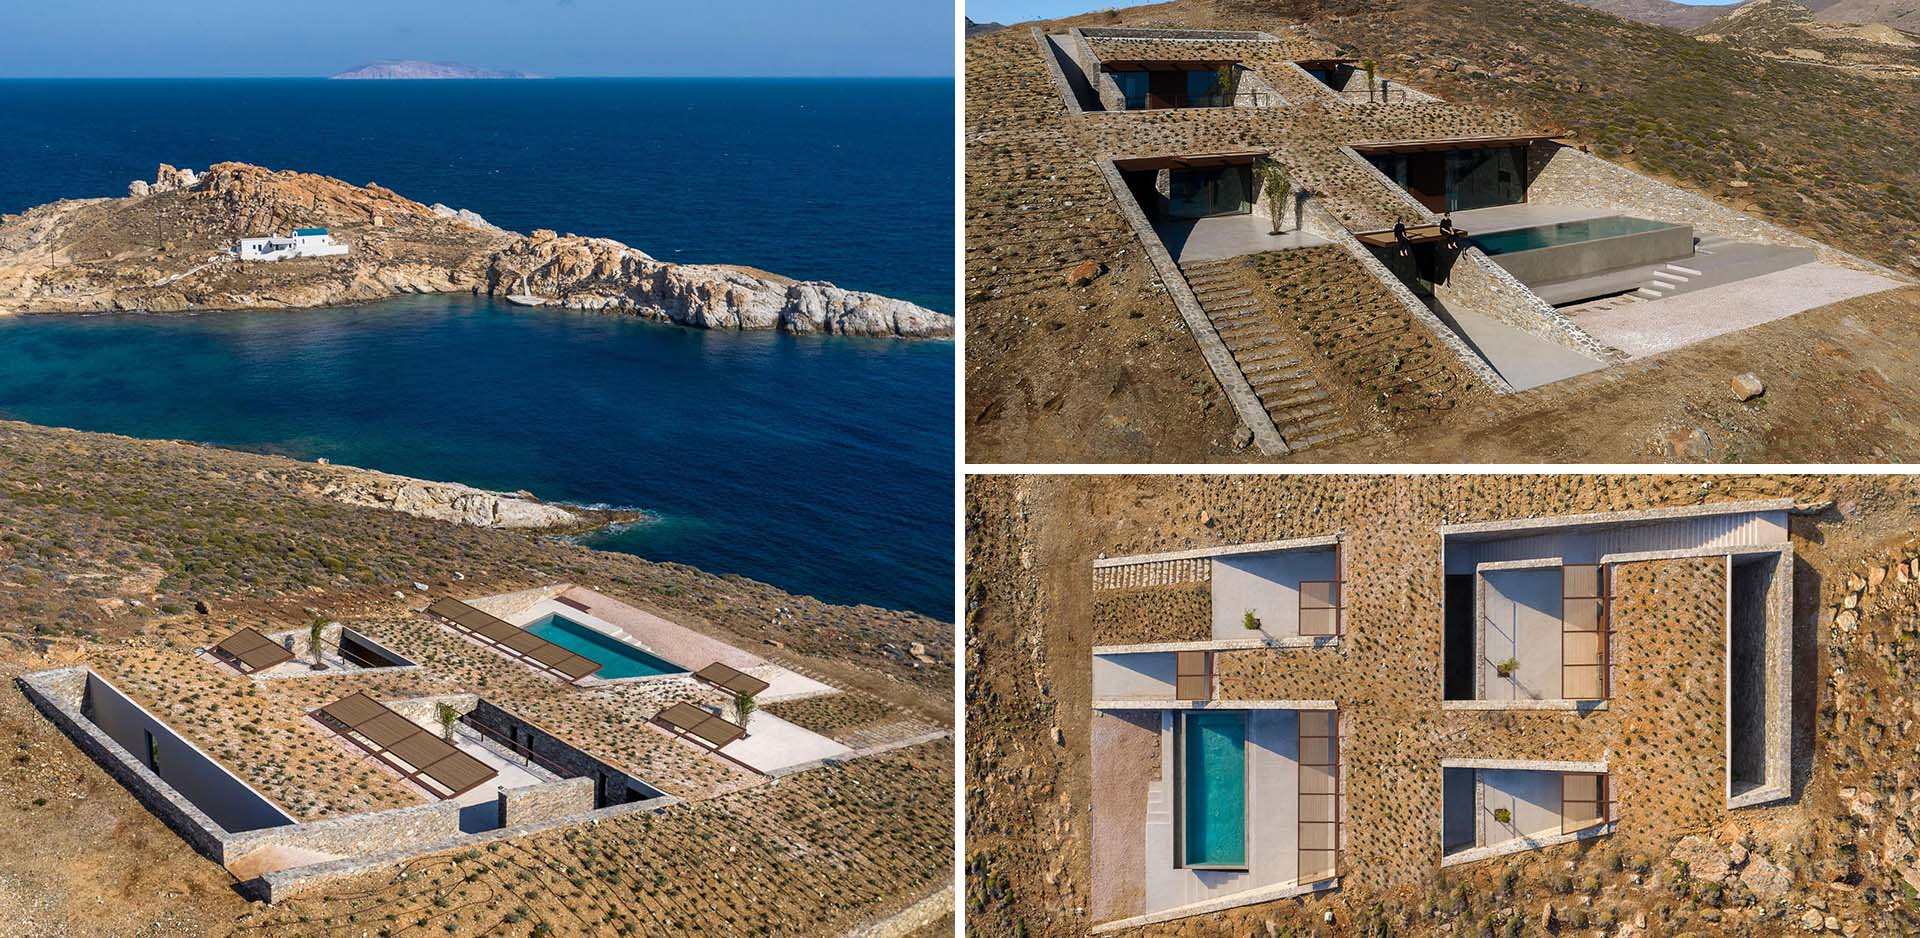 A modern home with stone walls and a swimming pool has been built into a hillside on an island.